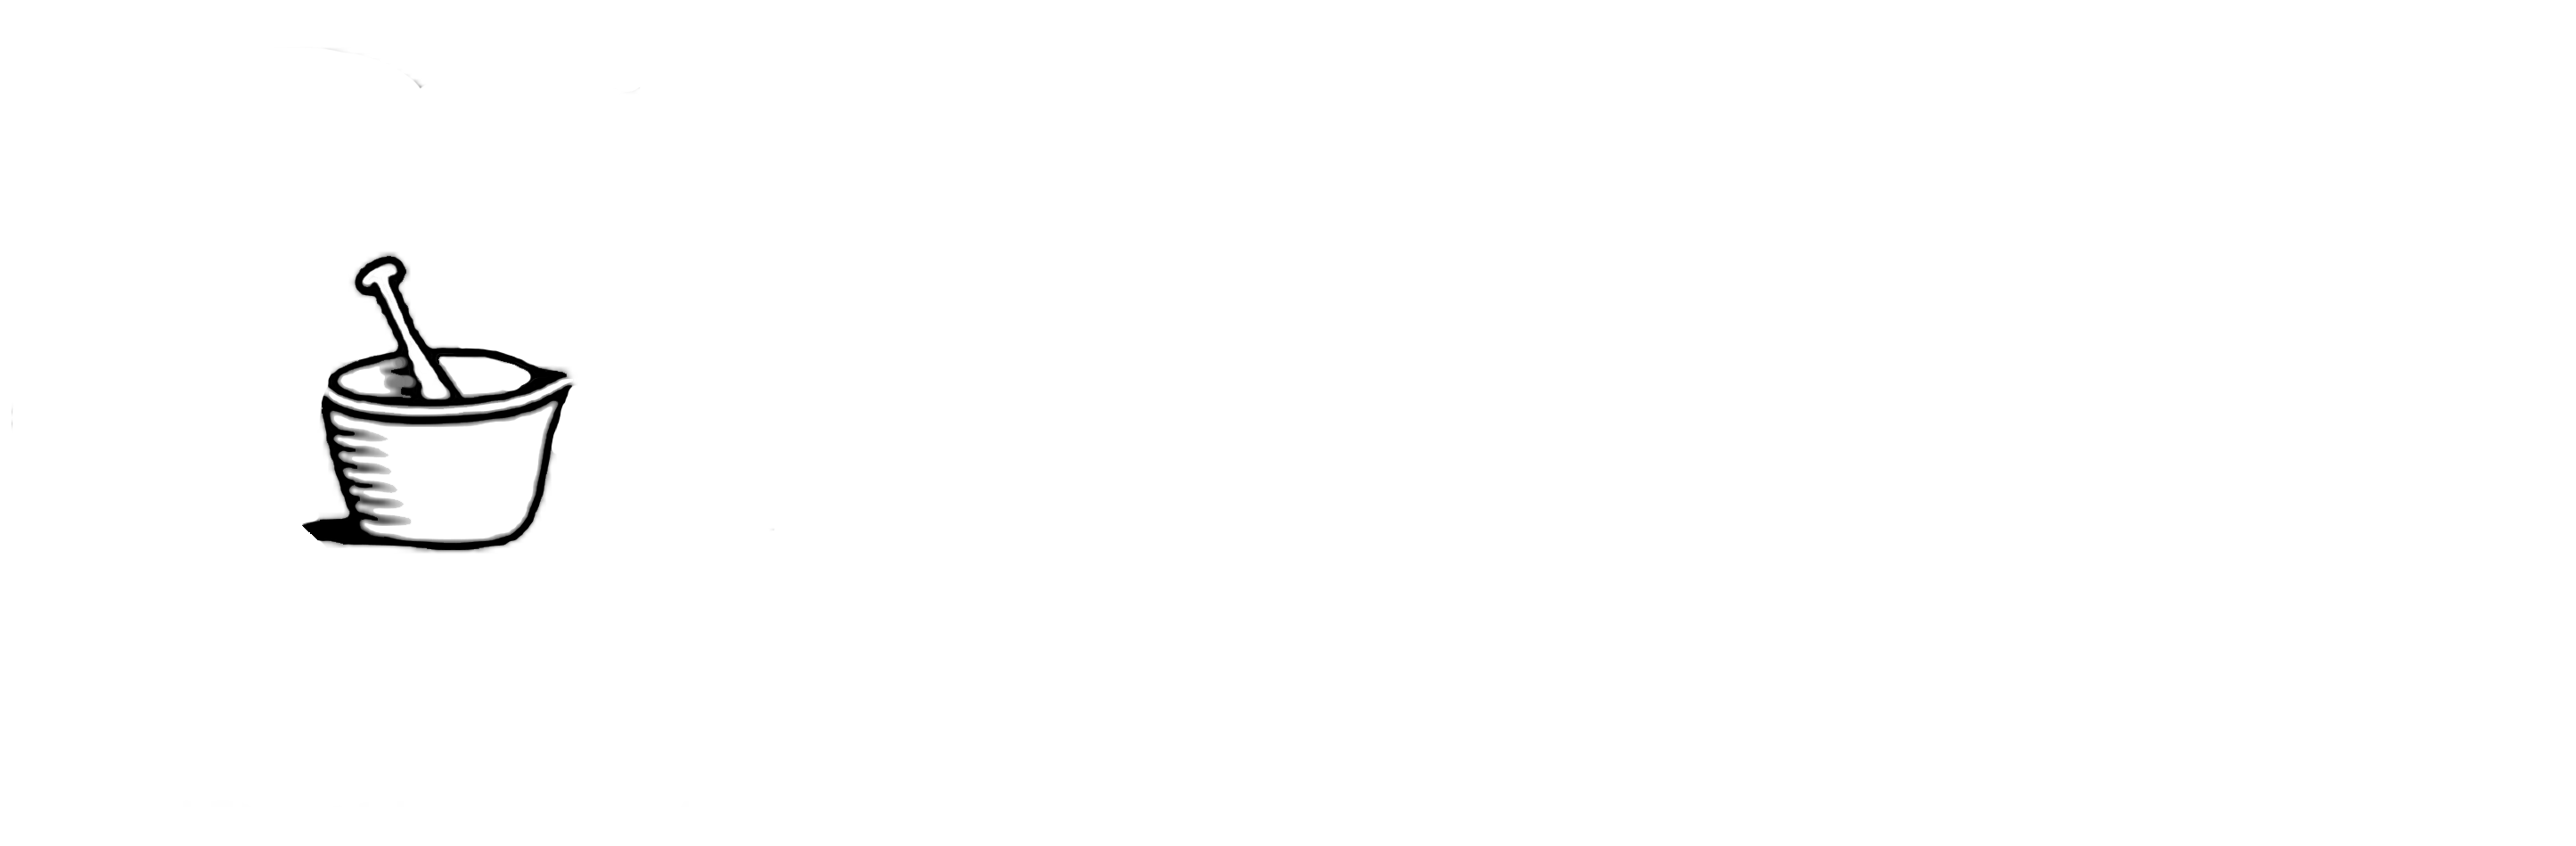 The official Wise Pharmacy logo